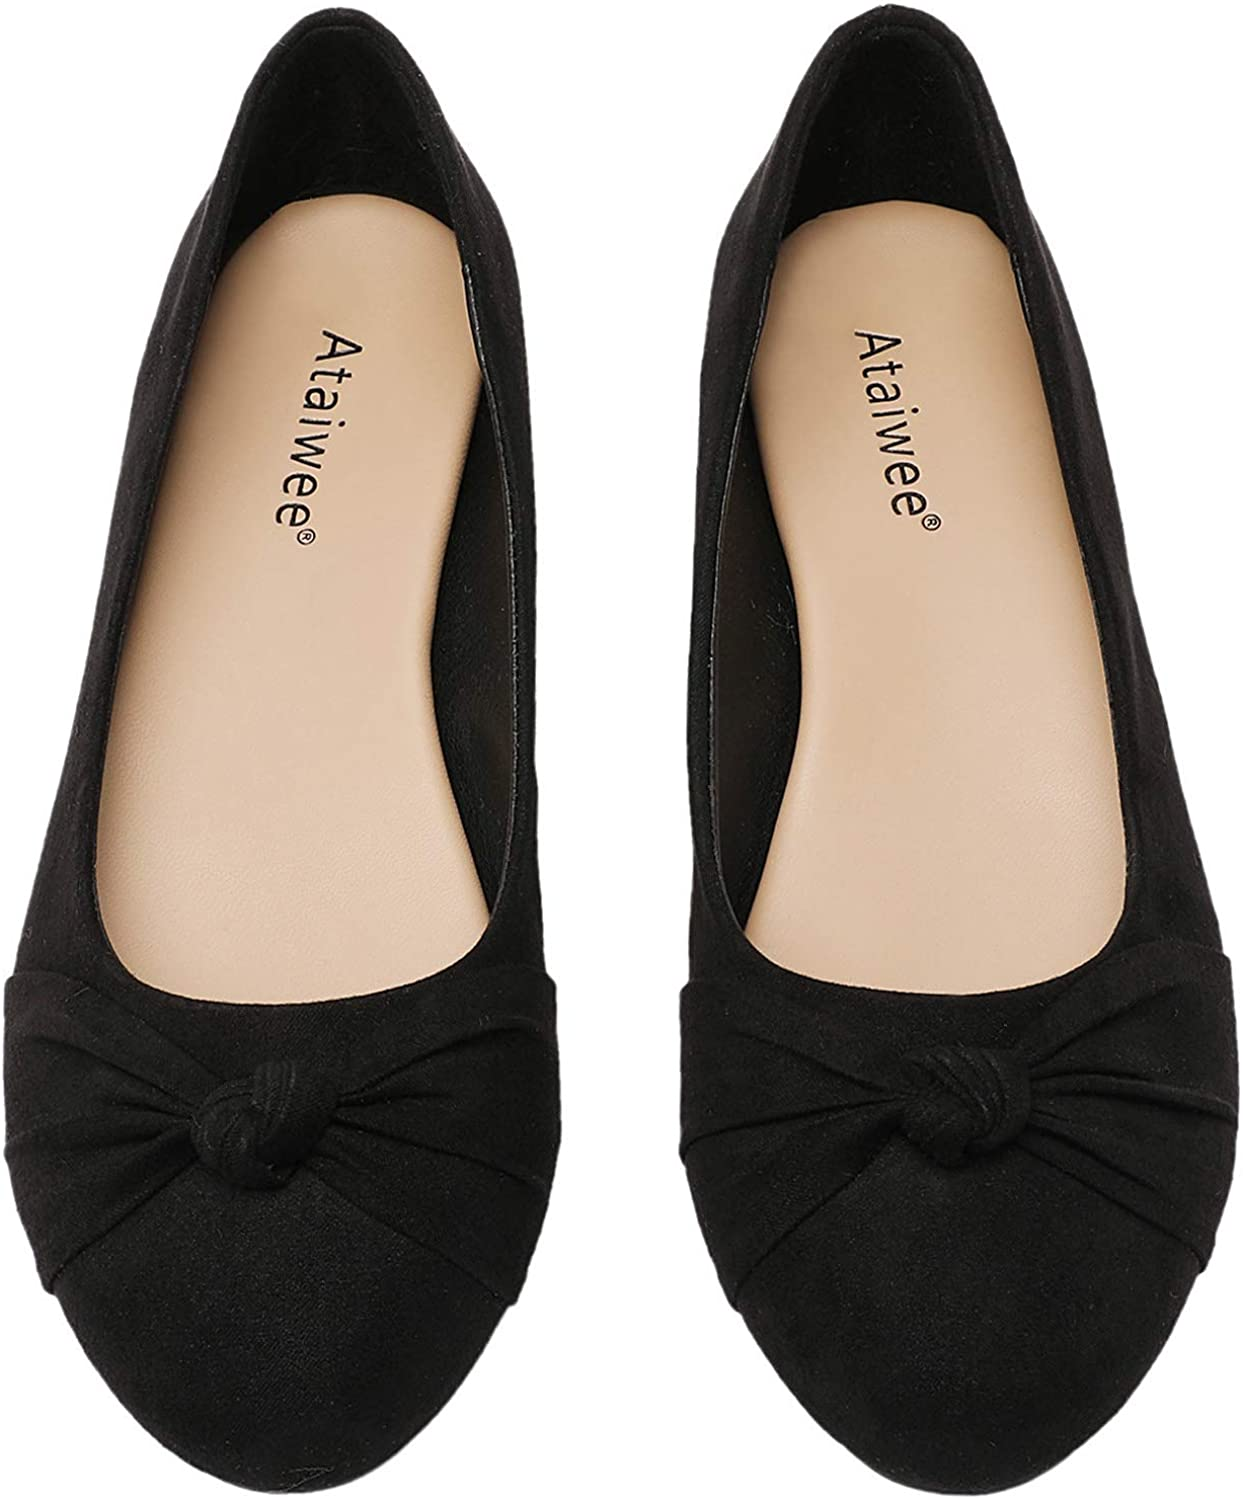 Ataiwee Women's Ballet Flats - Round Toe Suede Classic Cozy Cute Slip-on Flat Shoes.